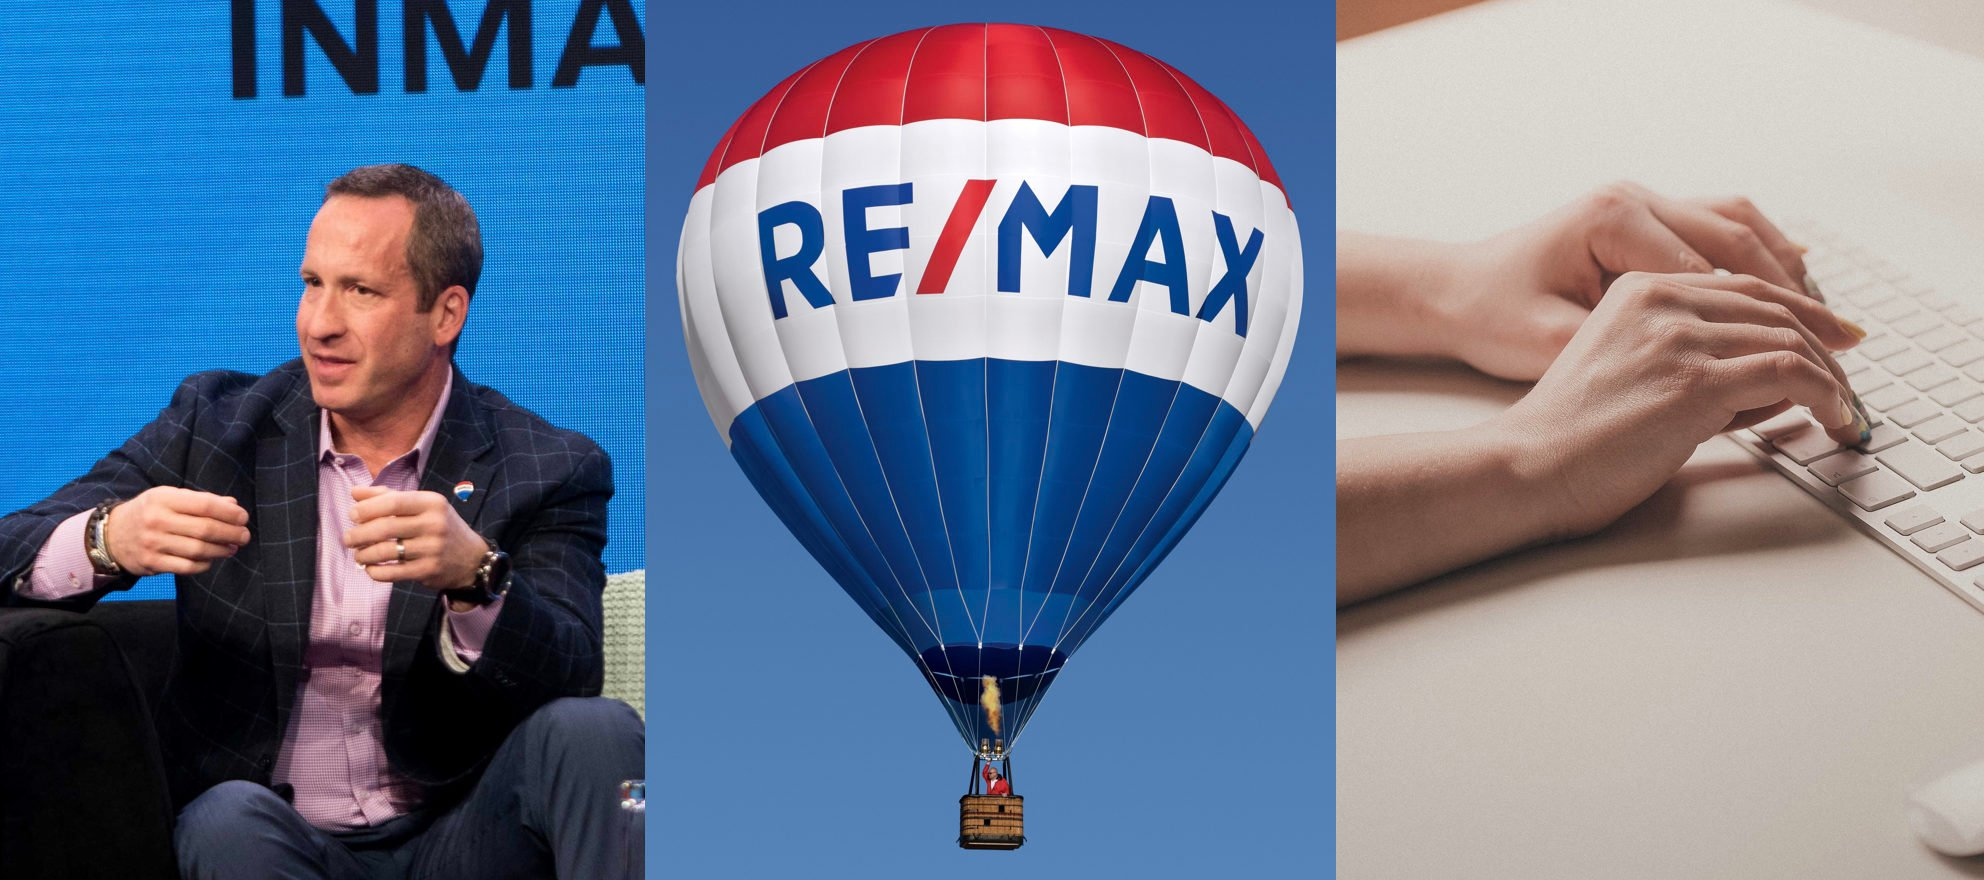 Here's how RE/MAX plans to end consumers' Zillow addiction